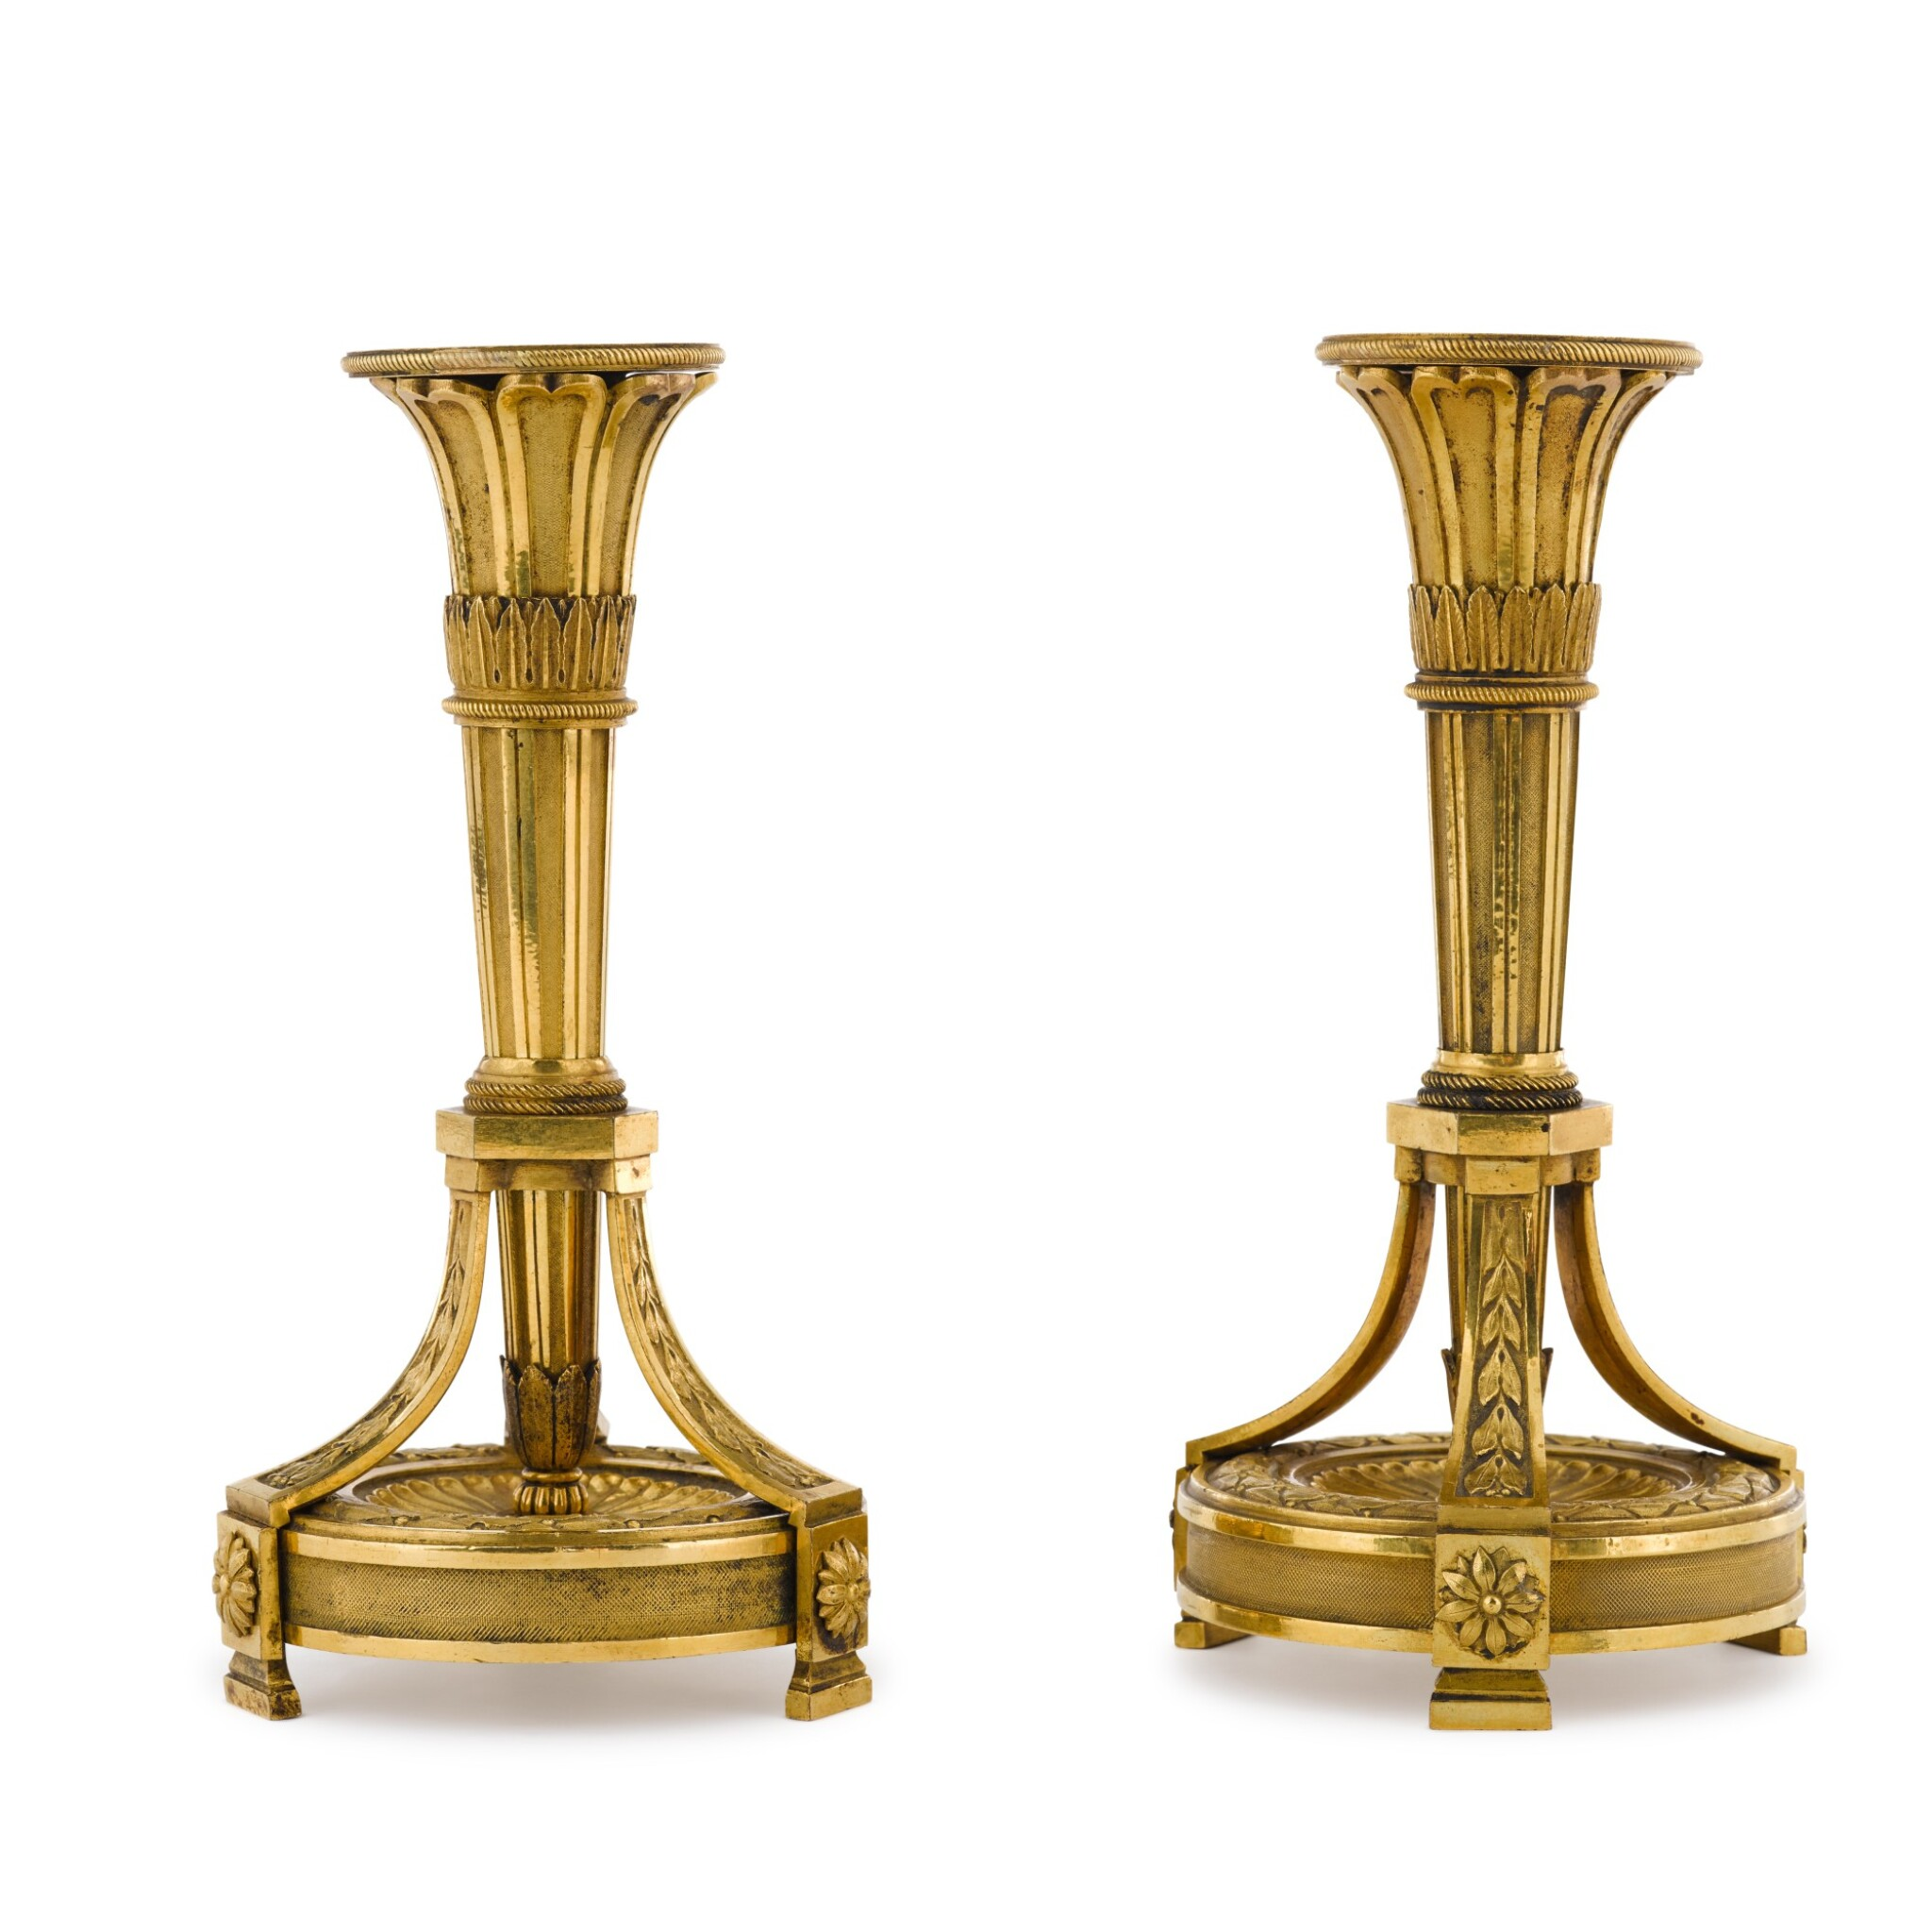 View full screen - View 1 of Lot 189. A pair of Louis XVI gilt-bronze candlesticks, the design attributed to Jean-Louis Prieur, late 18th century.